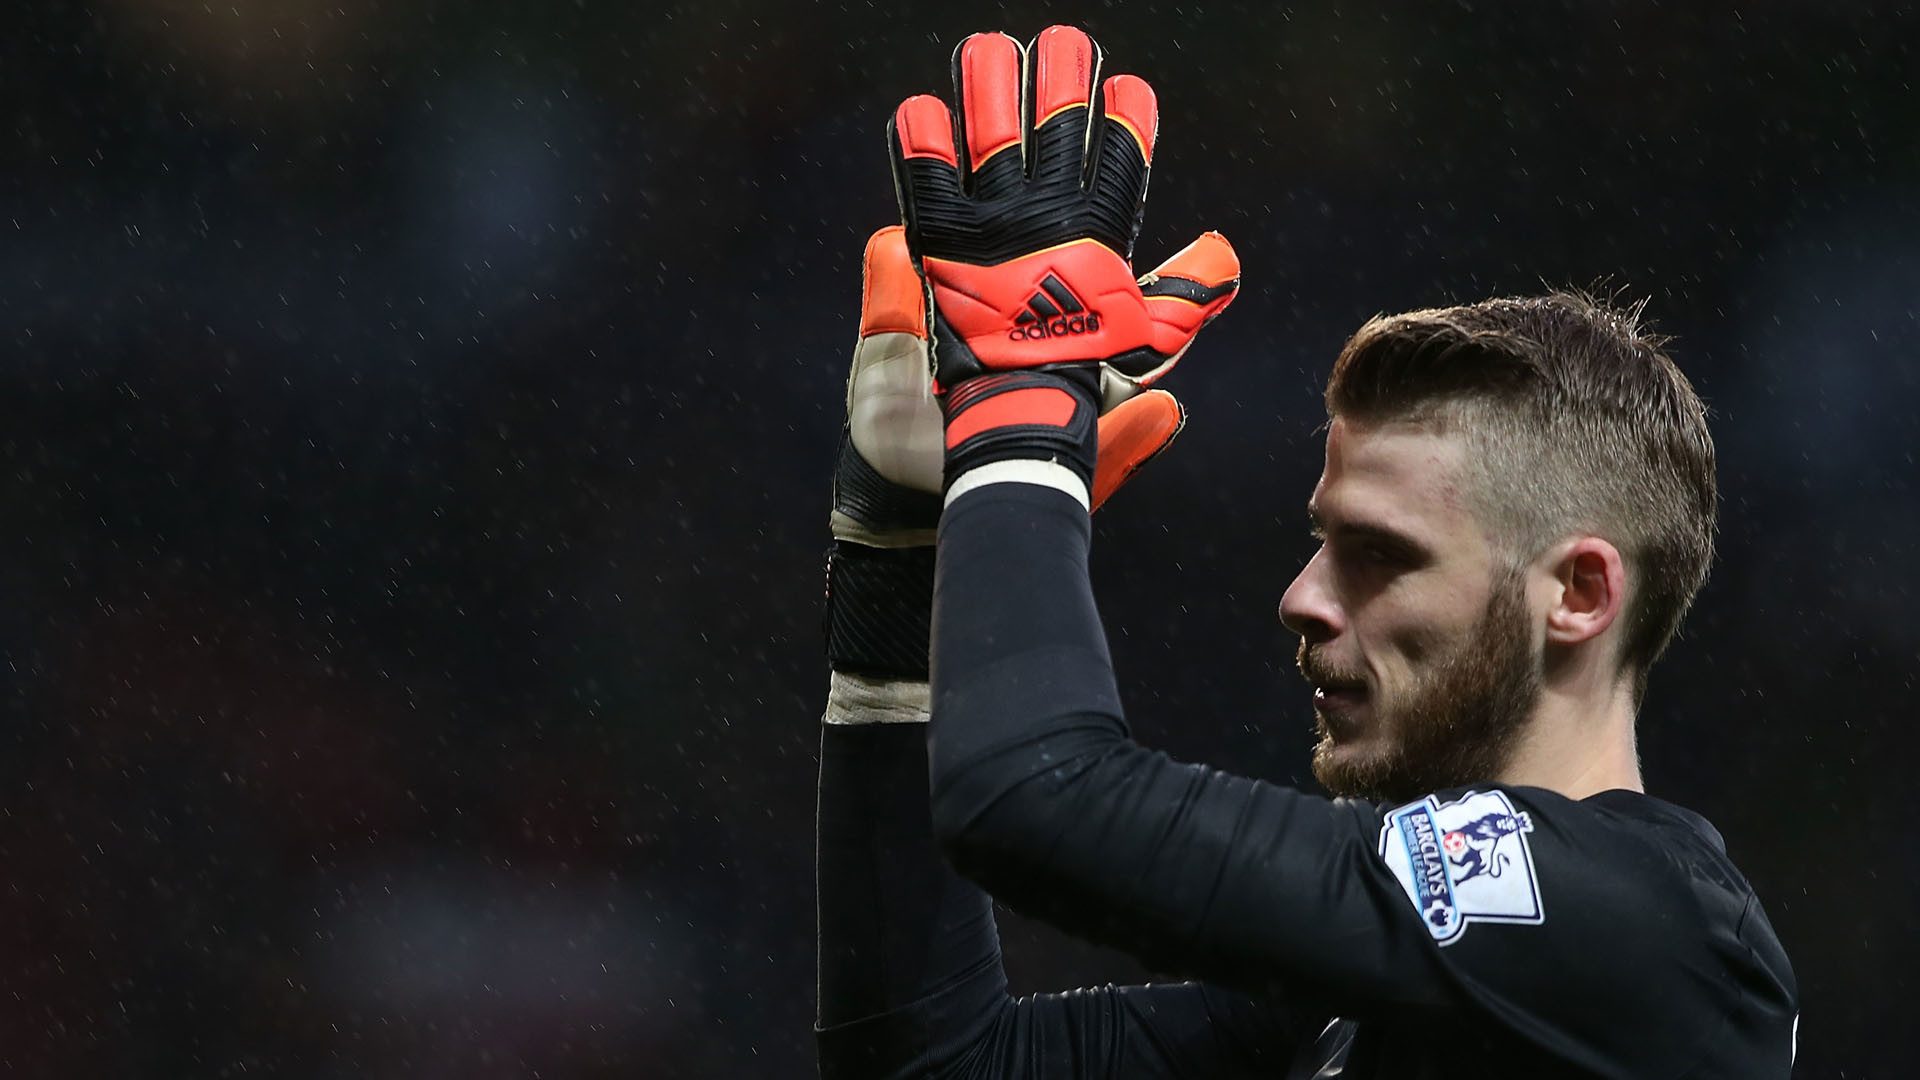 David De Gea Wallpapers (81+ Images